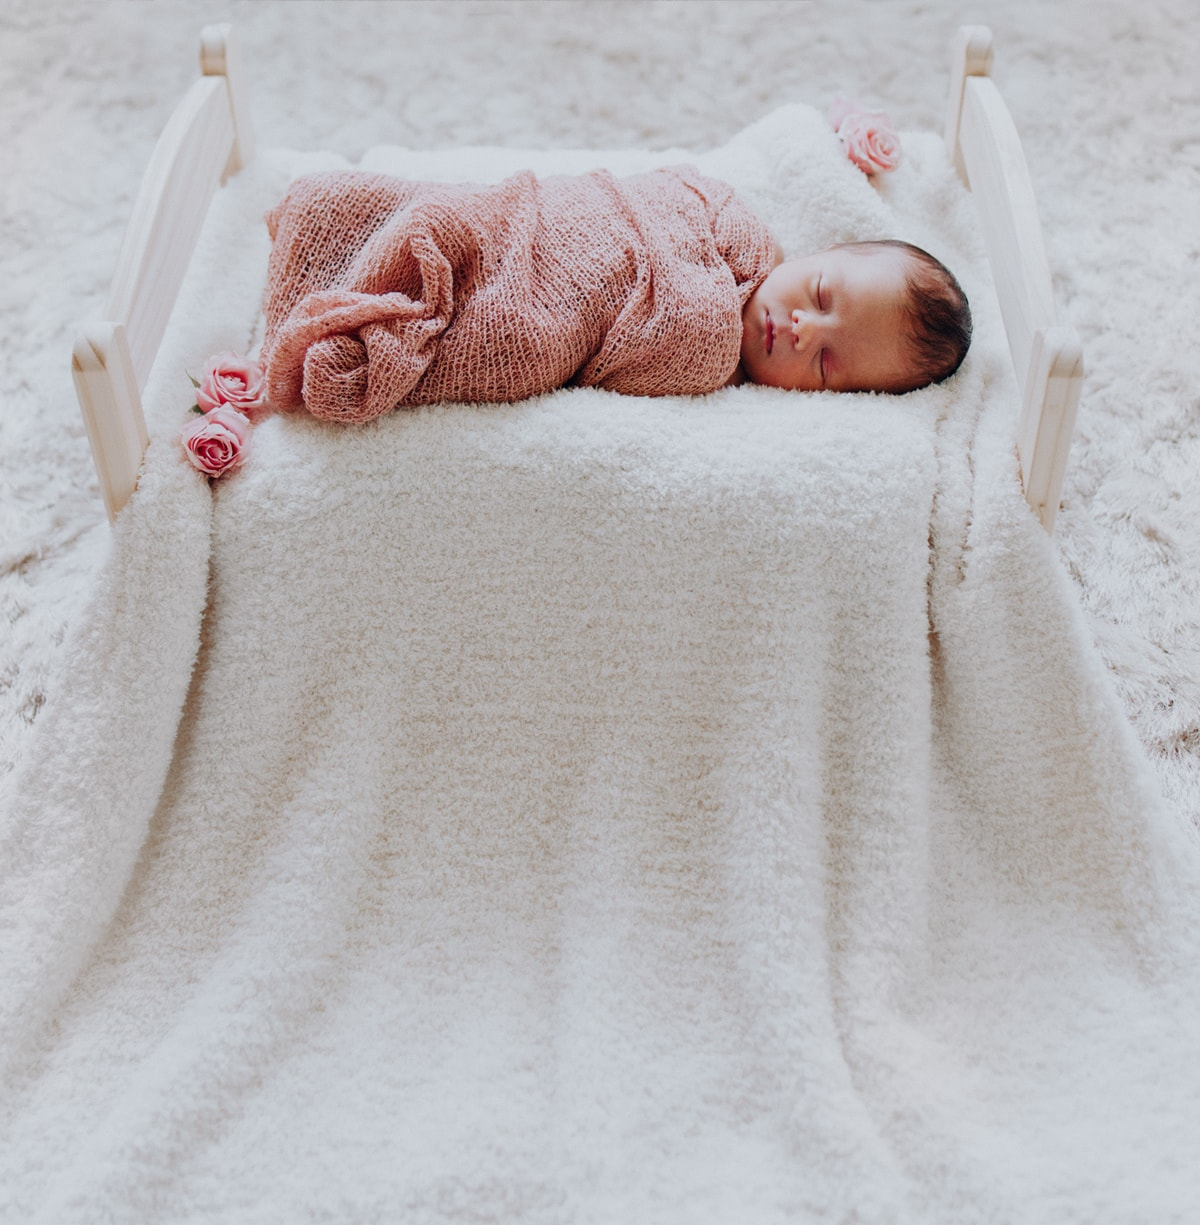 baby swaddled for newborn photos